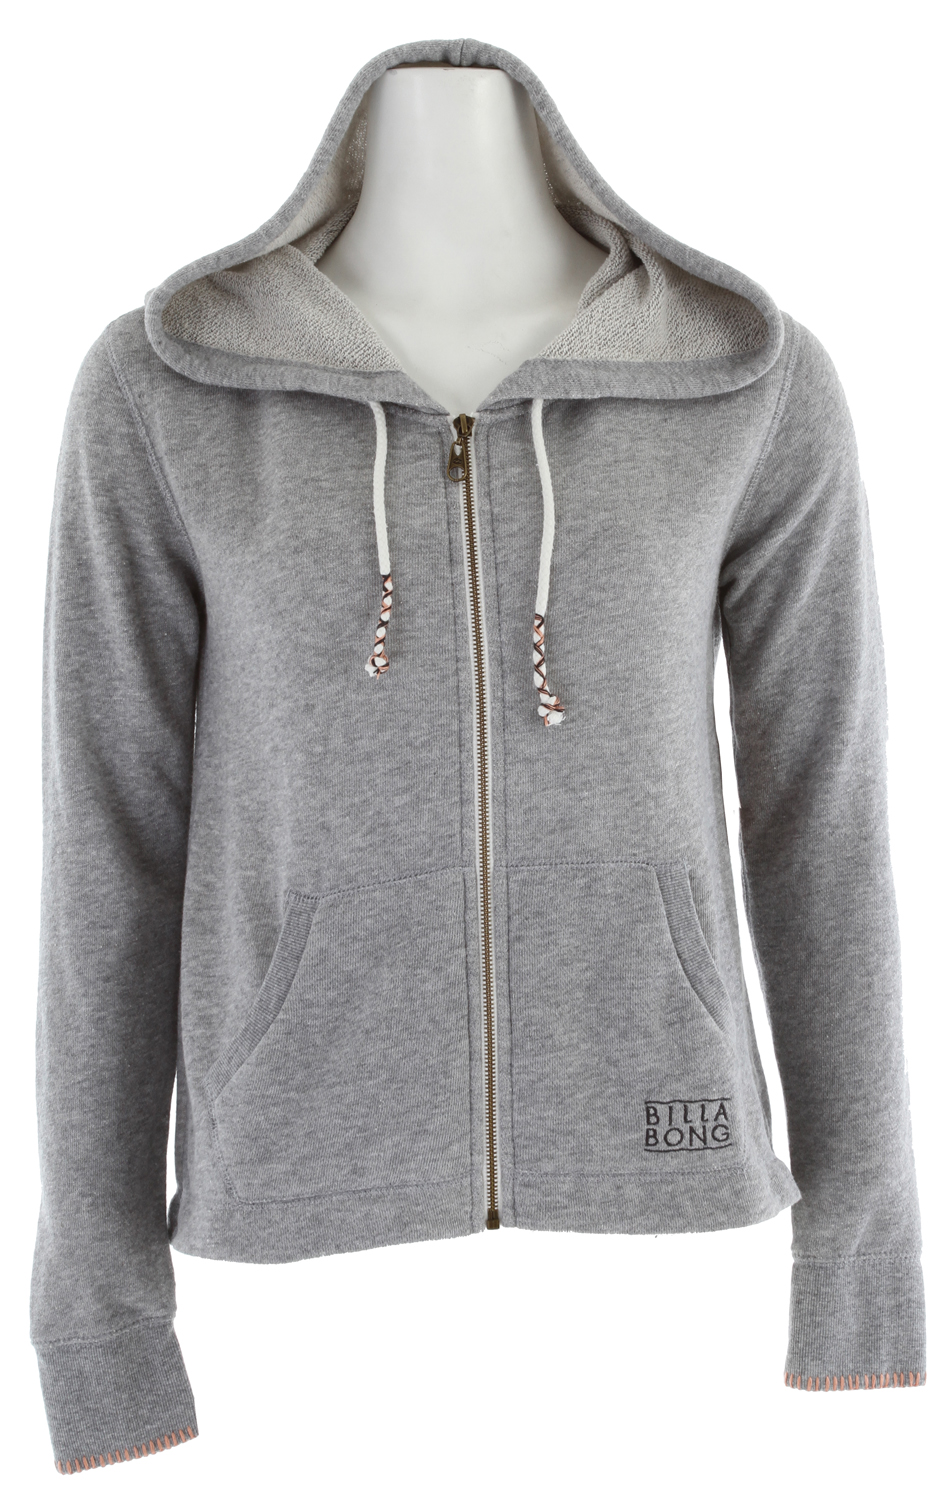 Surf Key Features of the Billabong Mermaid Hoodie: 60% cotton/40% polyester Zip hoodie w/ shirttail hem Wrapped drawcord - $38.95